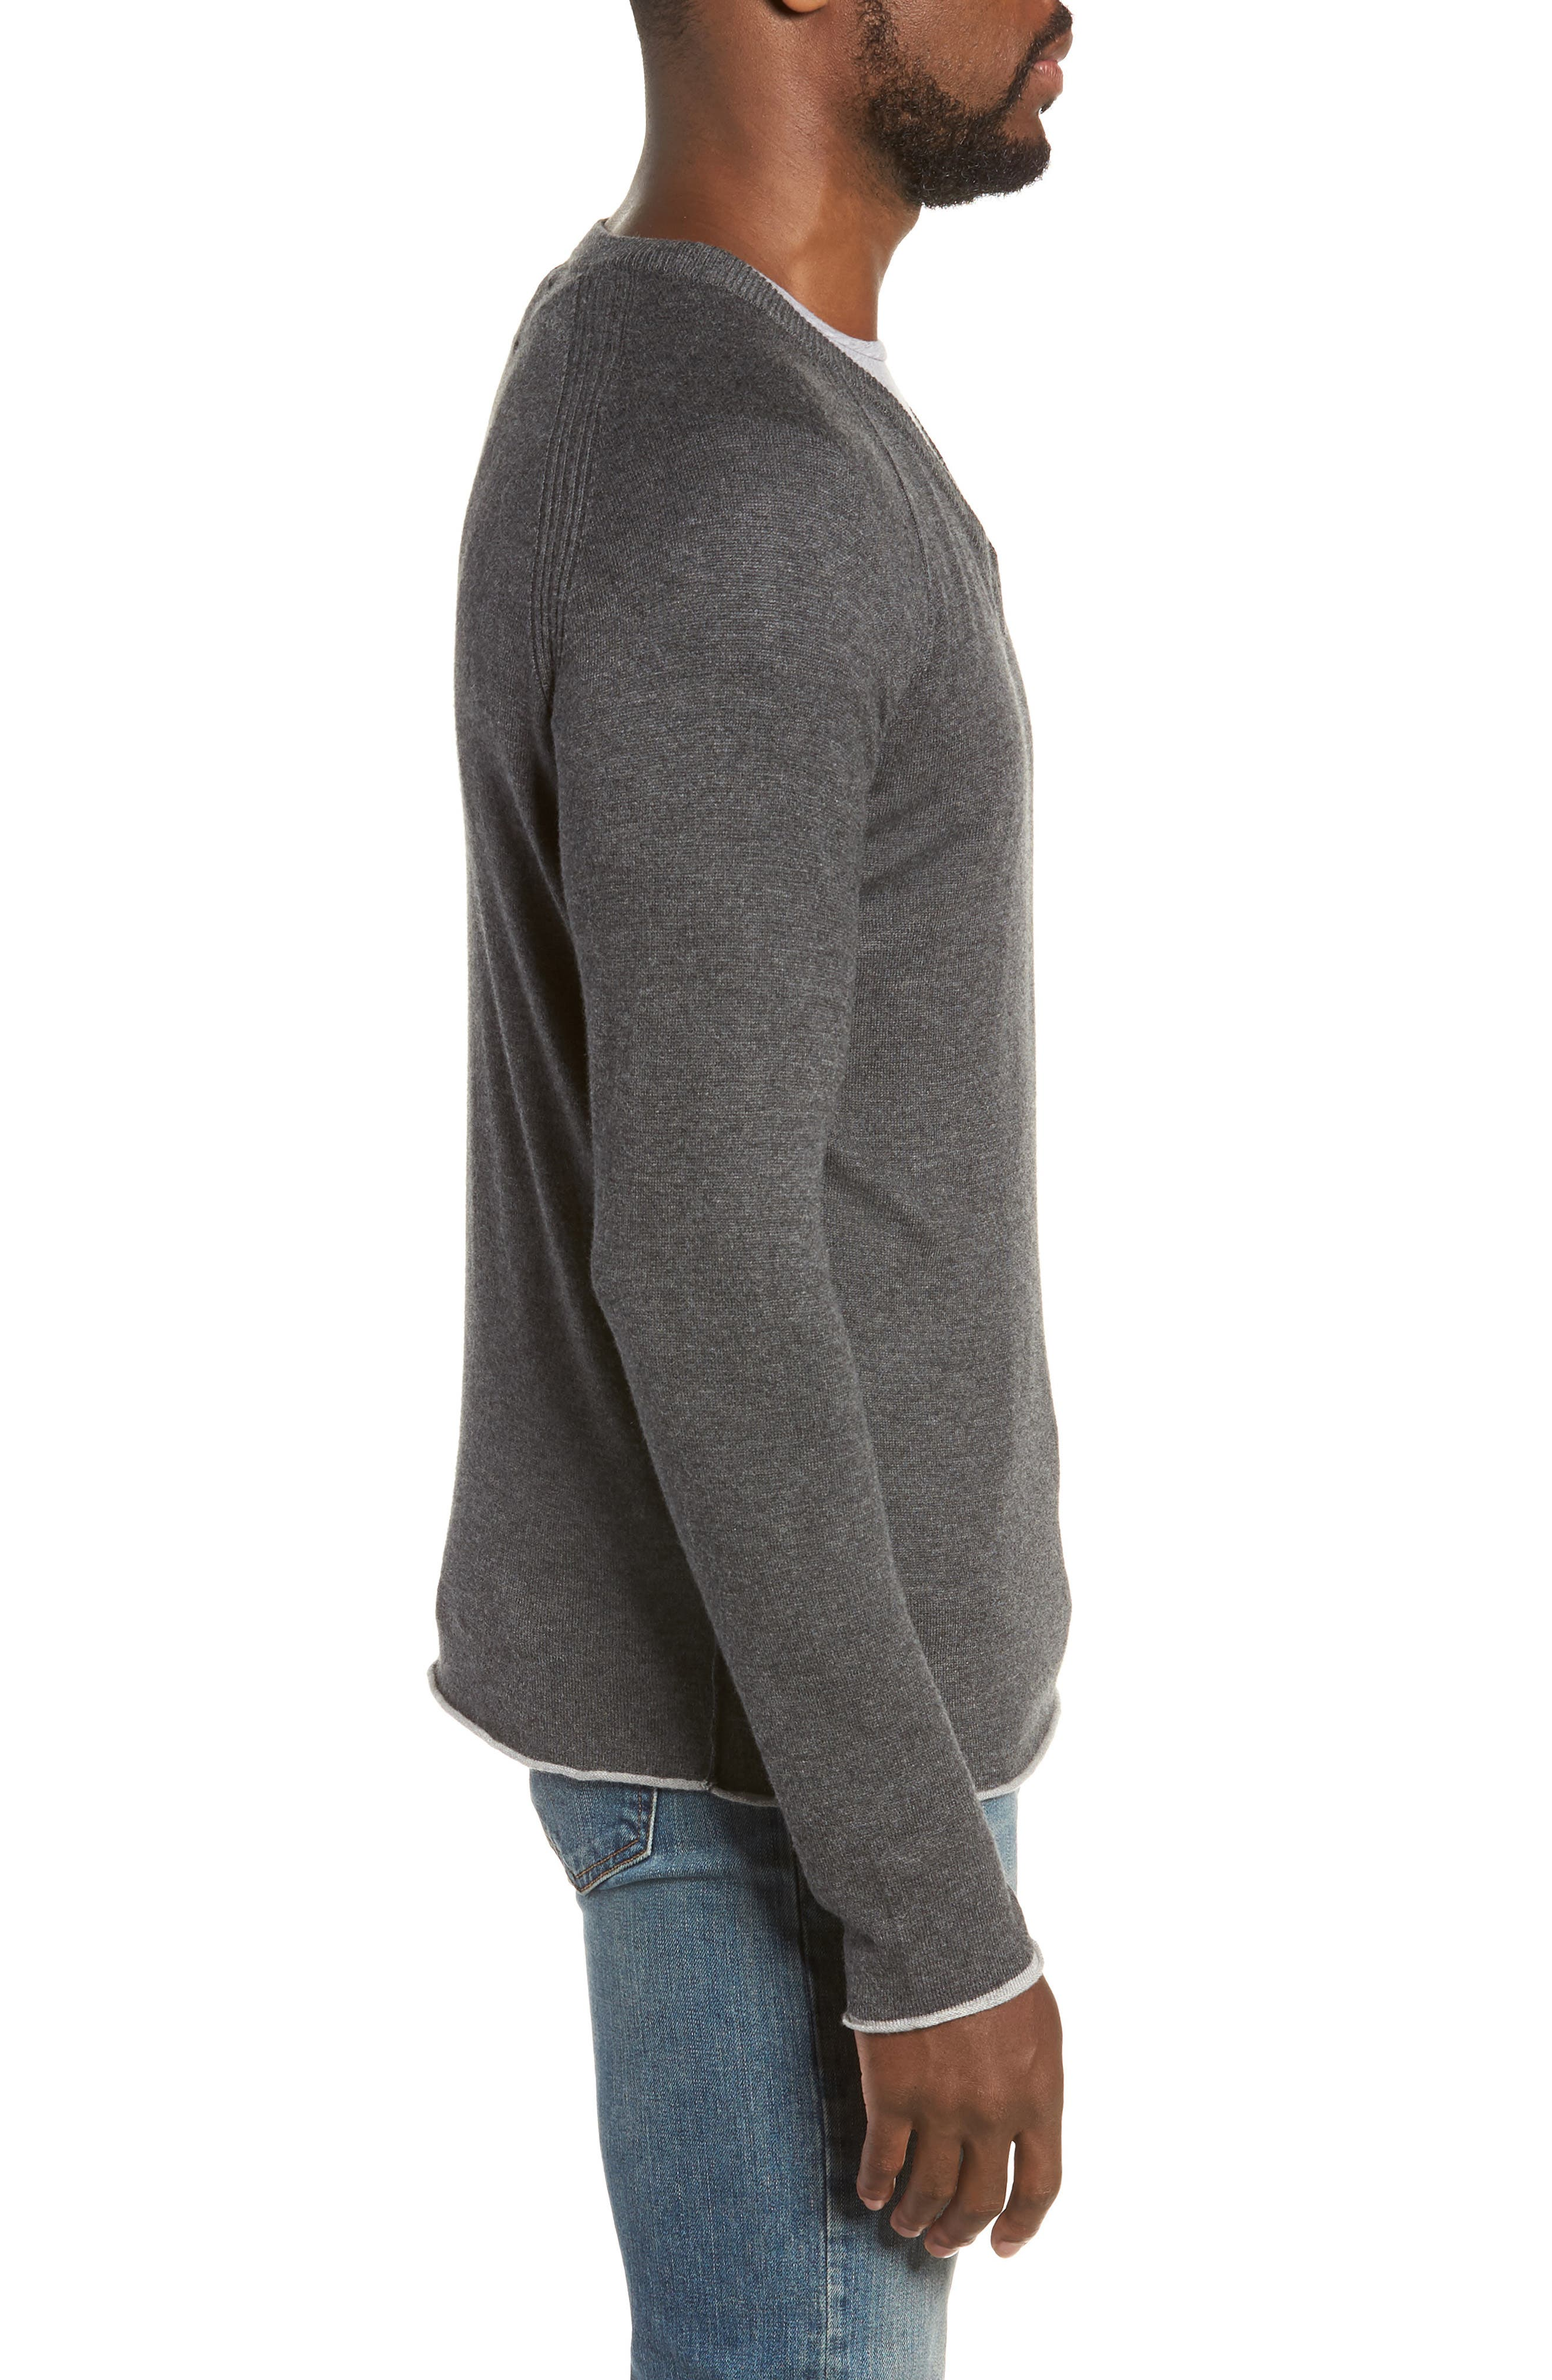 Salinas Cash V-Neck Sweater,                             Alternate thumbnail 3, color,                             CHARCOAL HEATHER